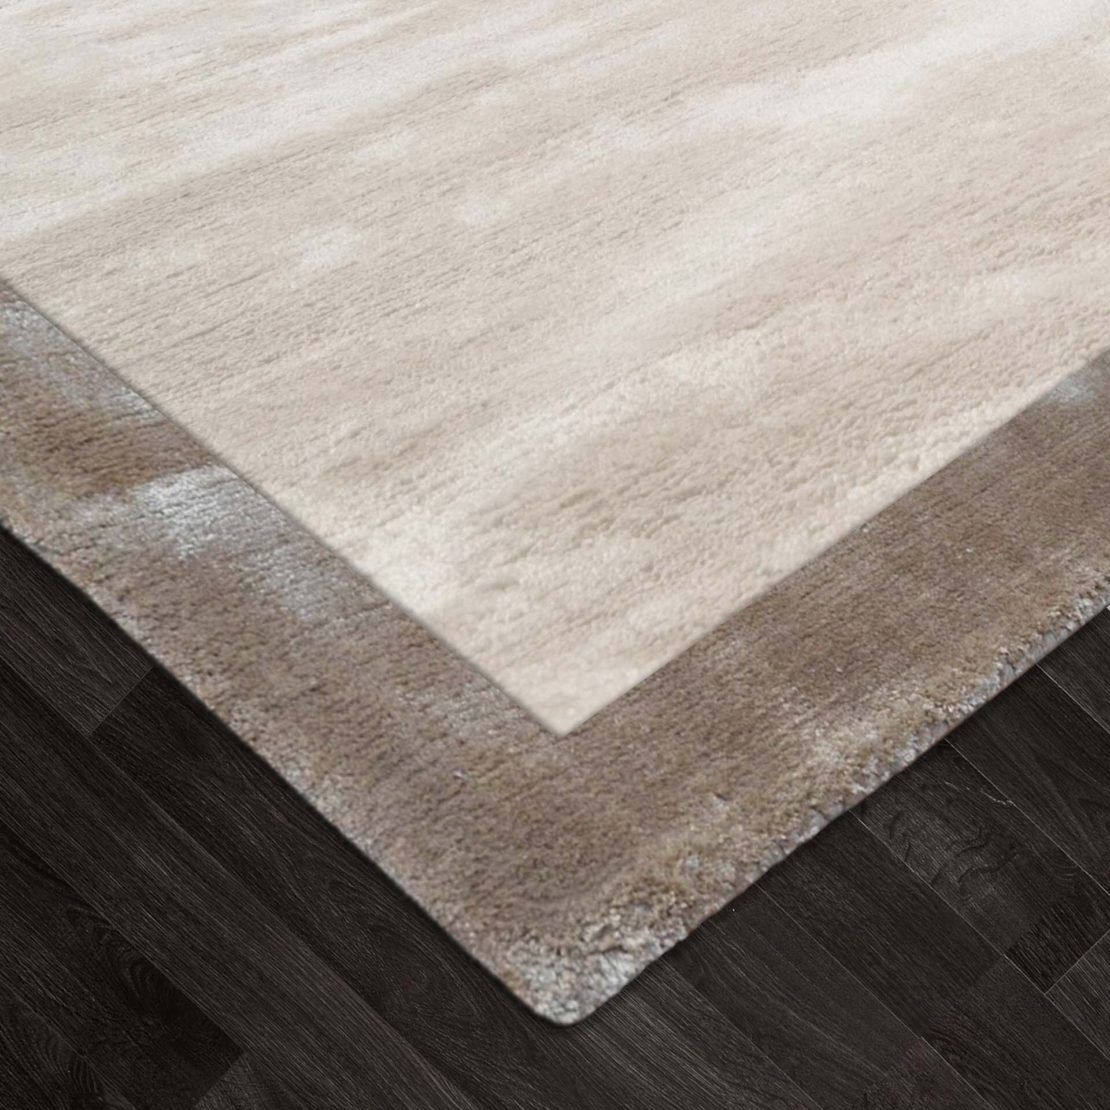 warm neutrals, dark wood floor with a two tone taupe and ivory rug